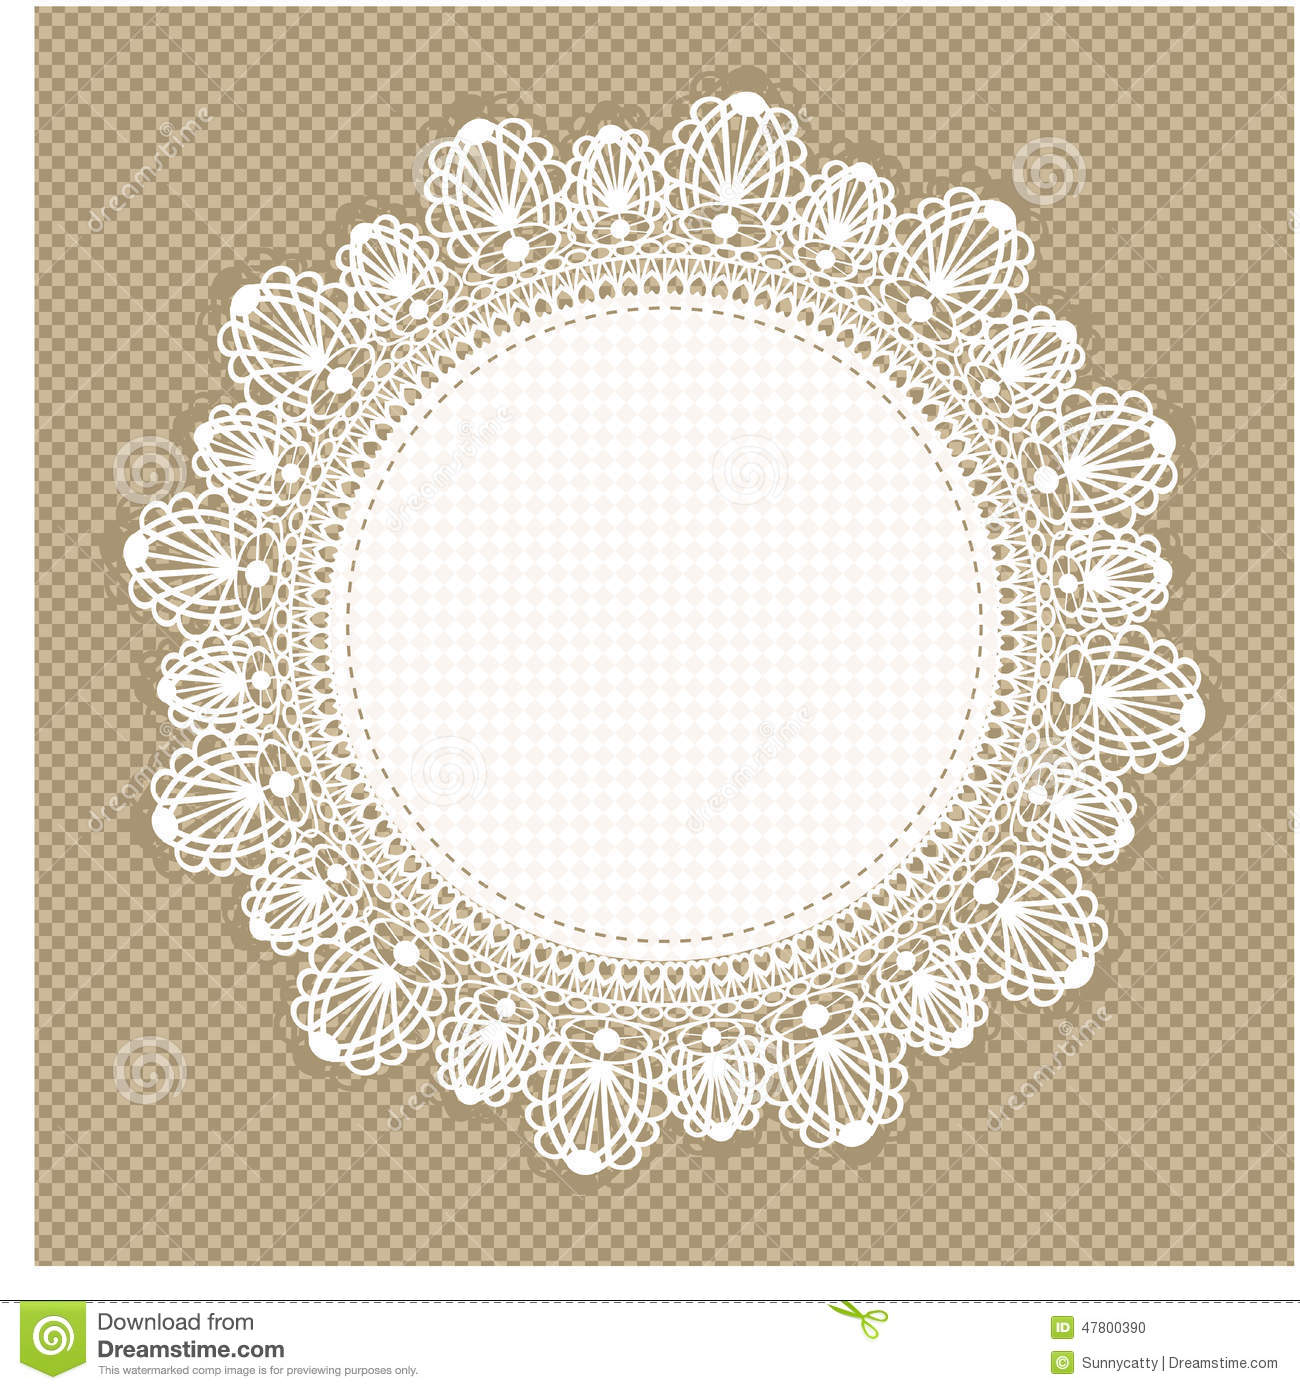 Vintage Lace Frame Stock Vector - Image: 47800390